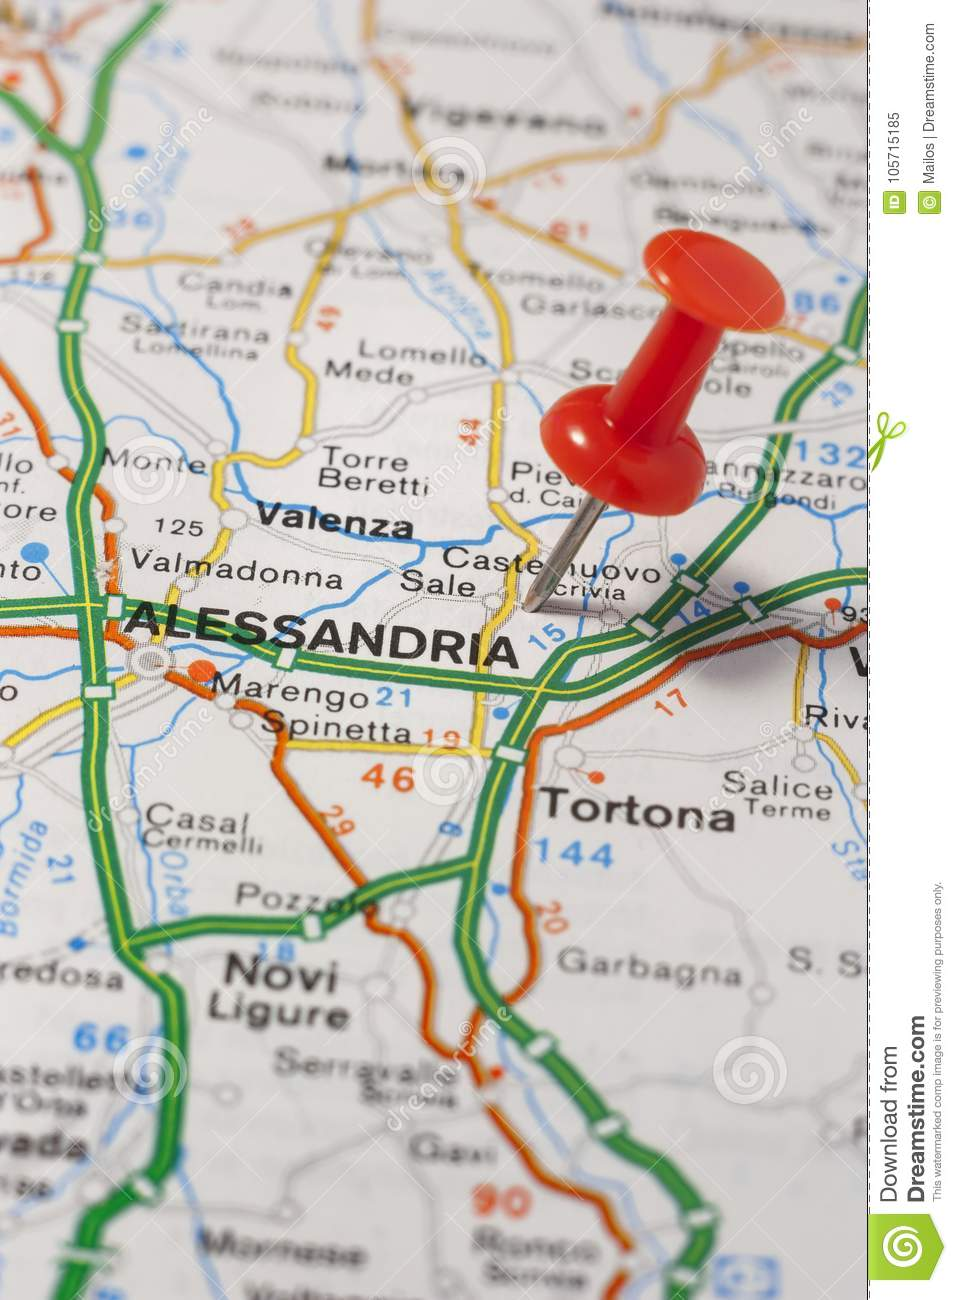 Alessandria Italy Map.Alessandria Pinned On A Map Of Italy Stock Image Image Of Close